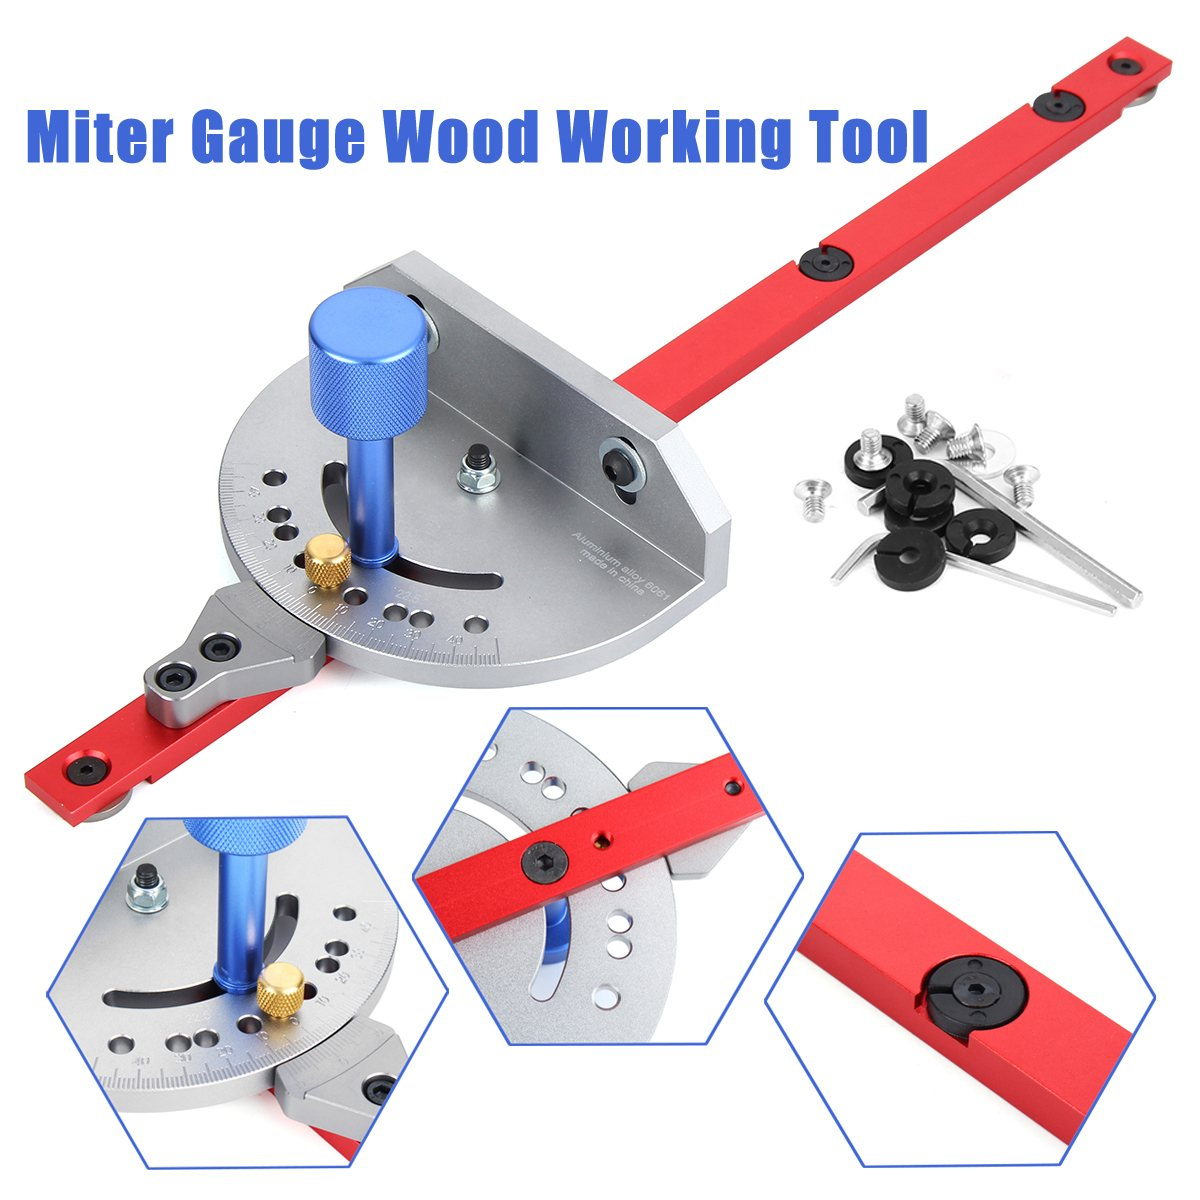 New Miter Gauge Wood Working Tool For Bandsaw Table Saw Router Angle Miter Gauge Guide Fence Woodworking Machinery Parts high quality table saw router miter gauge sawing assembly ruler woodworking diy tools